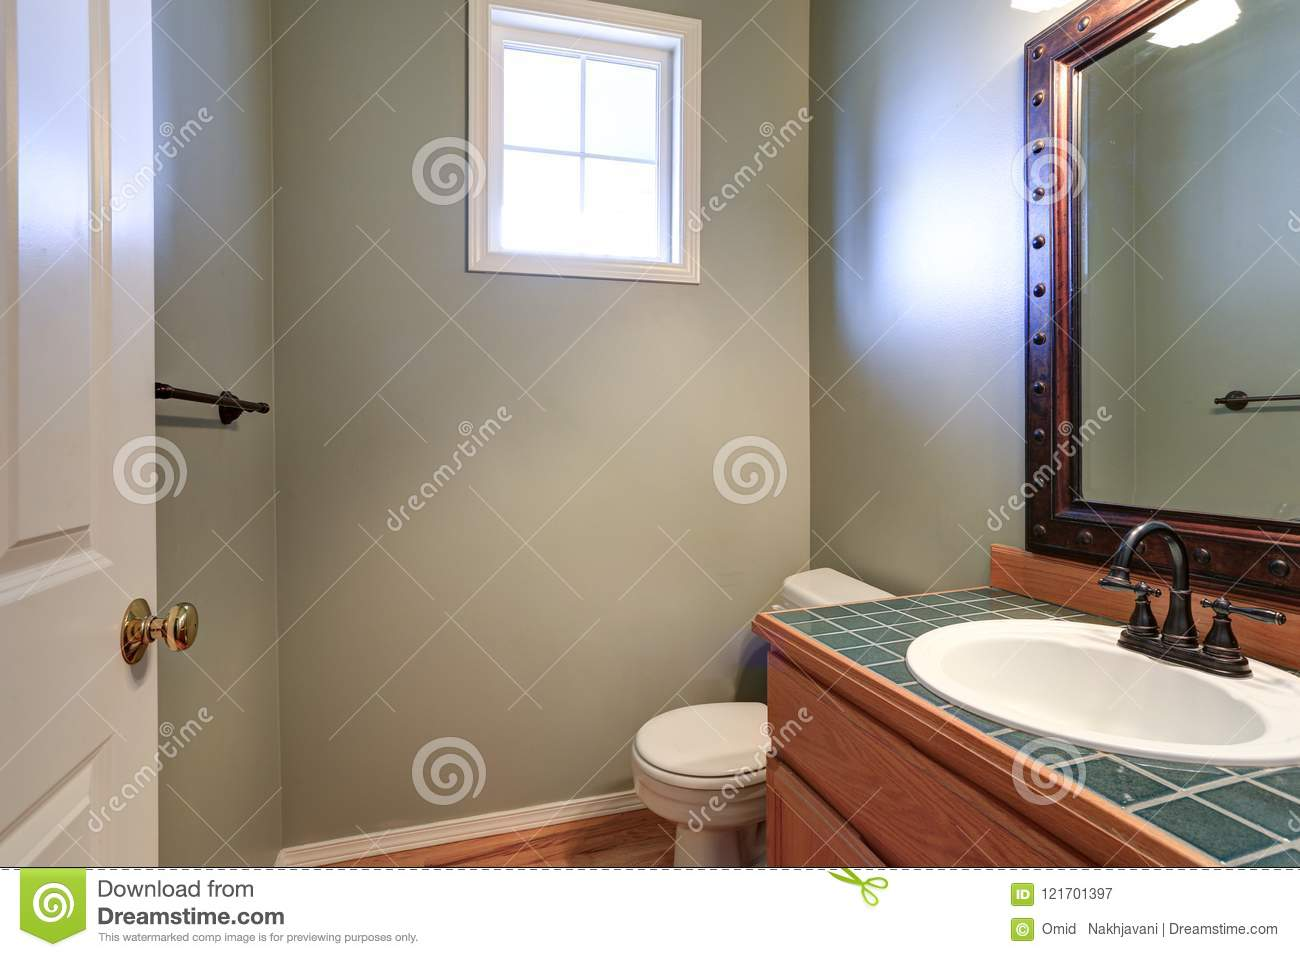 Grey Powder Room Offers Vanity Cabinet With Green Tiled Counter Top Stock Image Image Of Green House 121701397